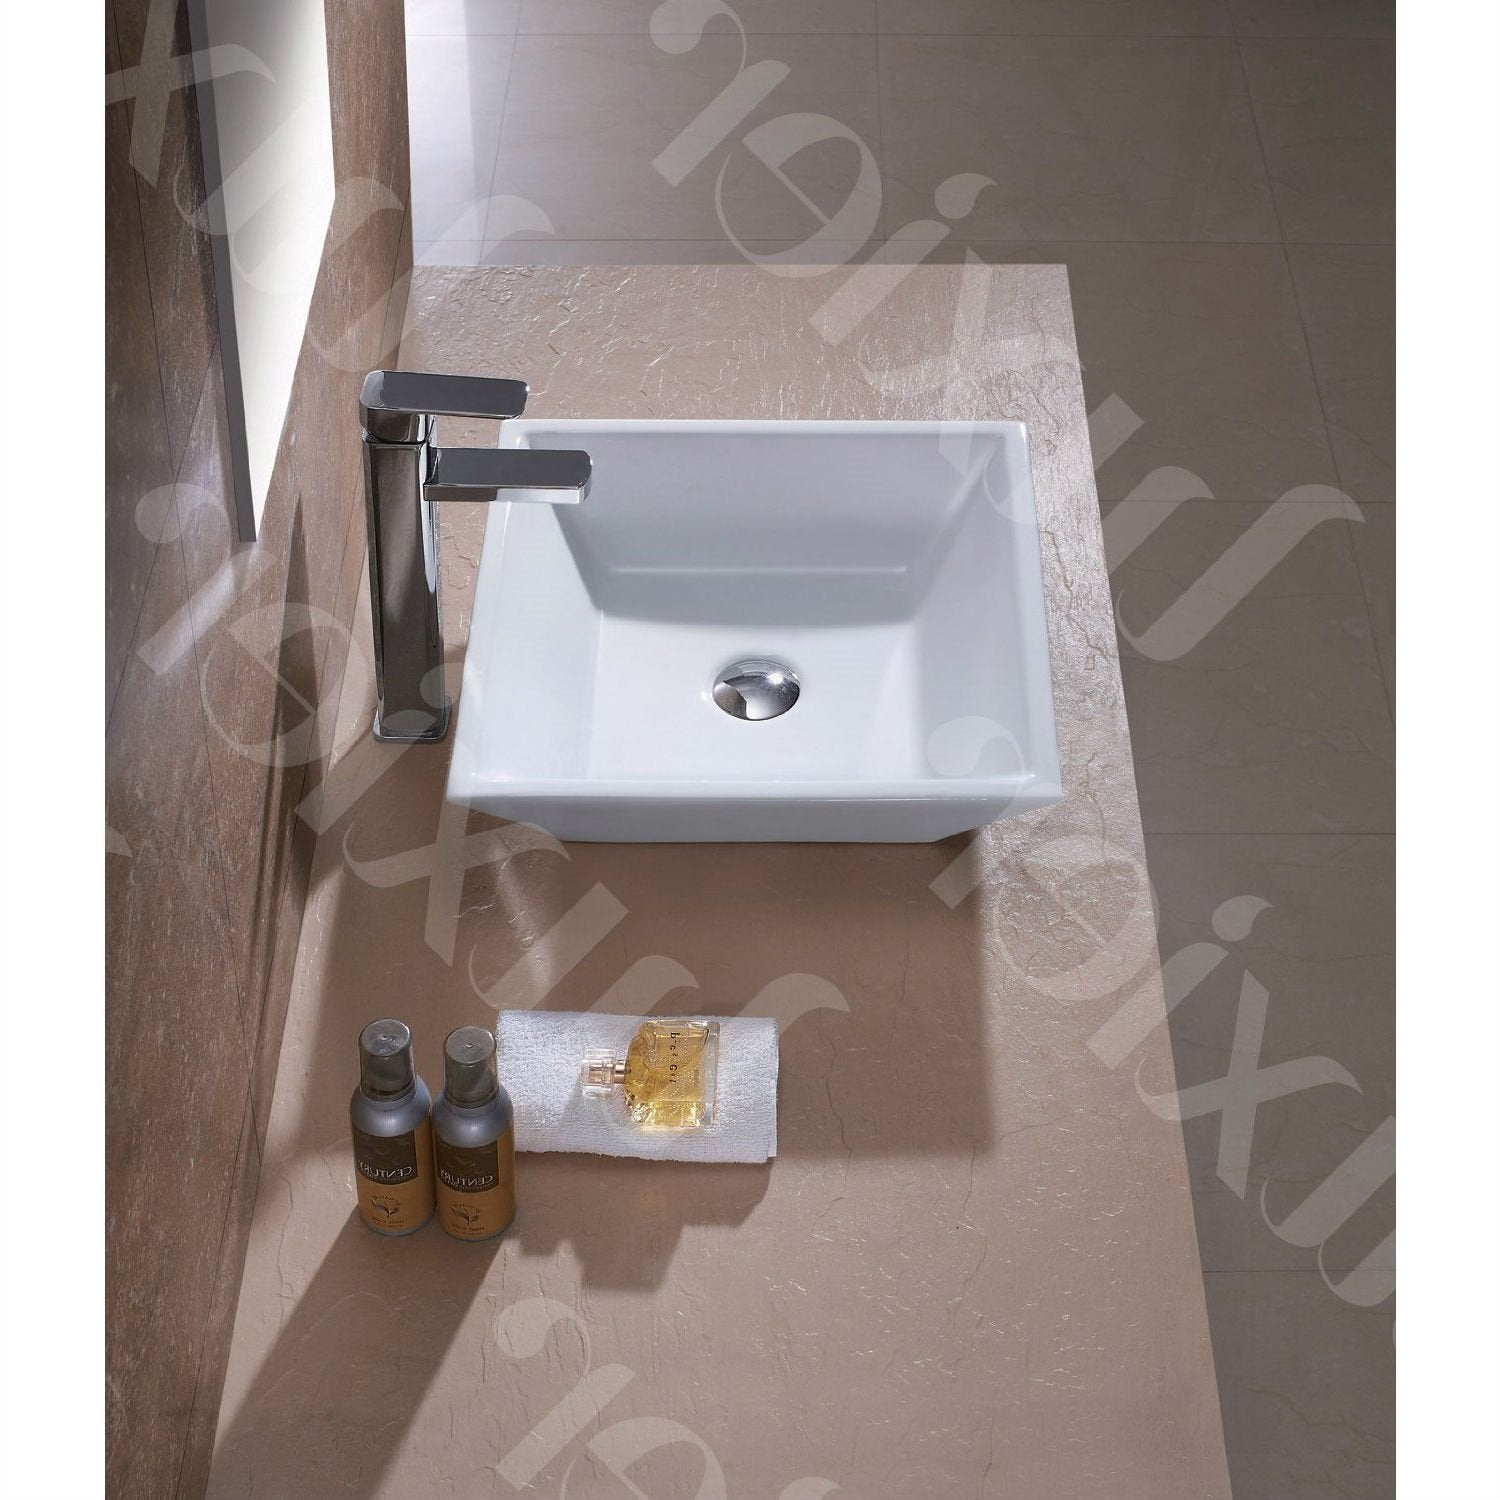 Contemporary White Ceramic Porcelain Vessel Bathroom Vanity Sink - 16 x 16-inch.